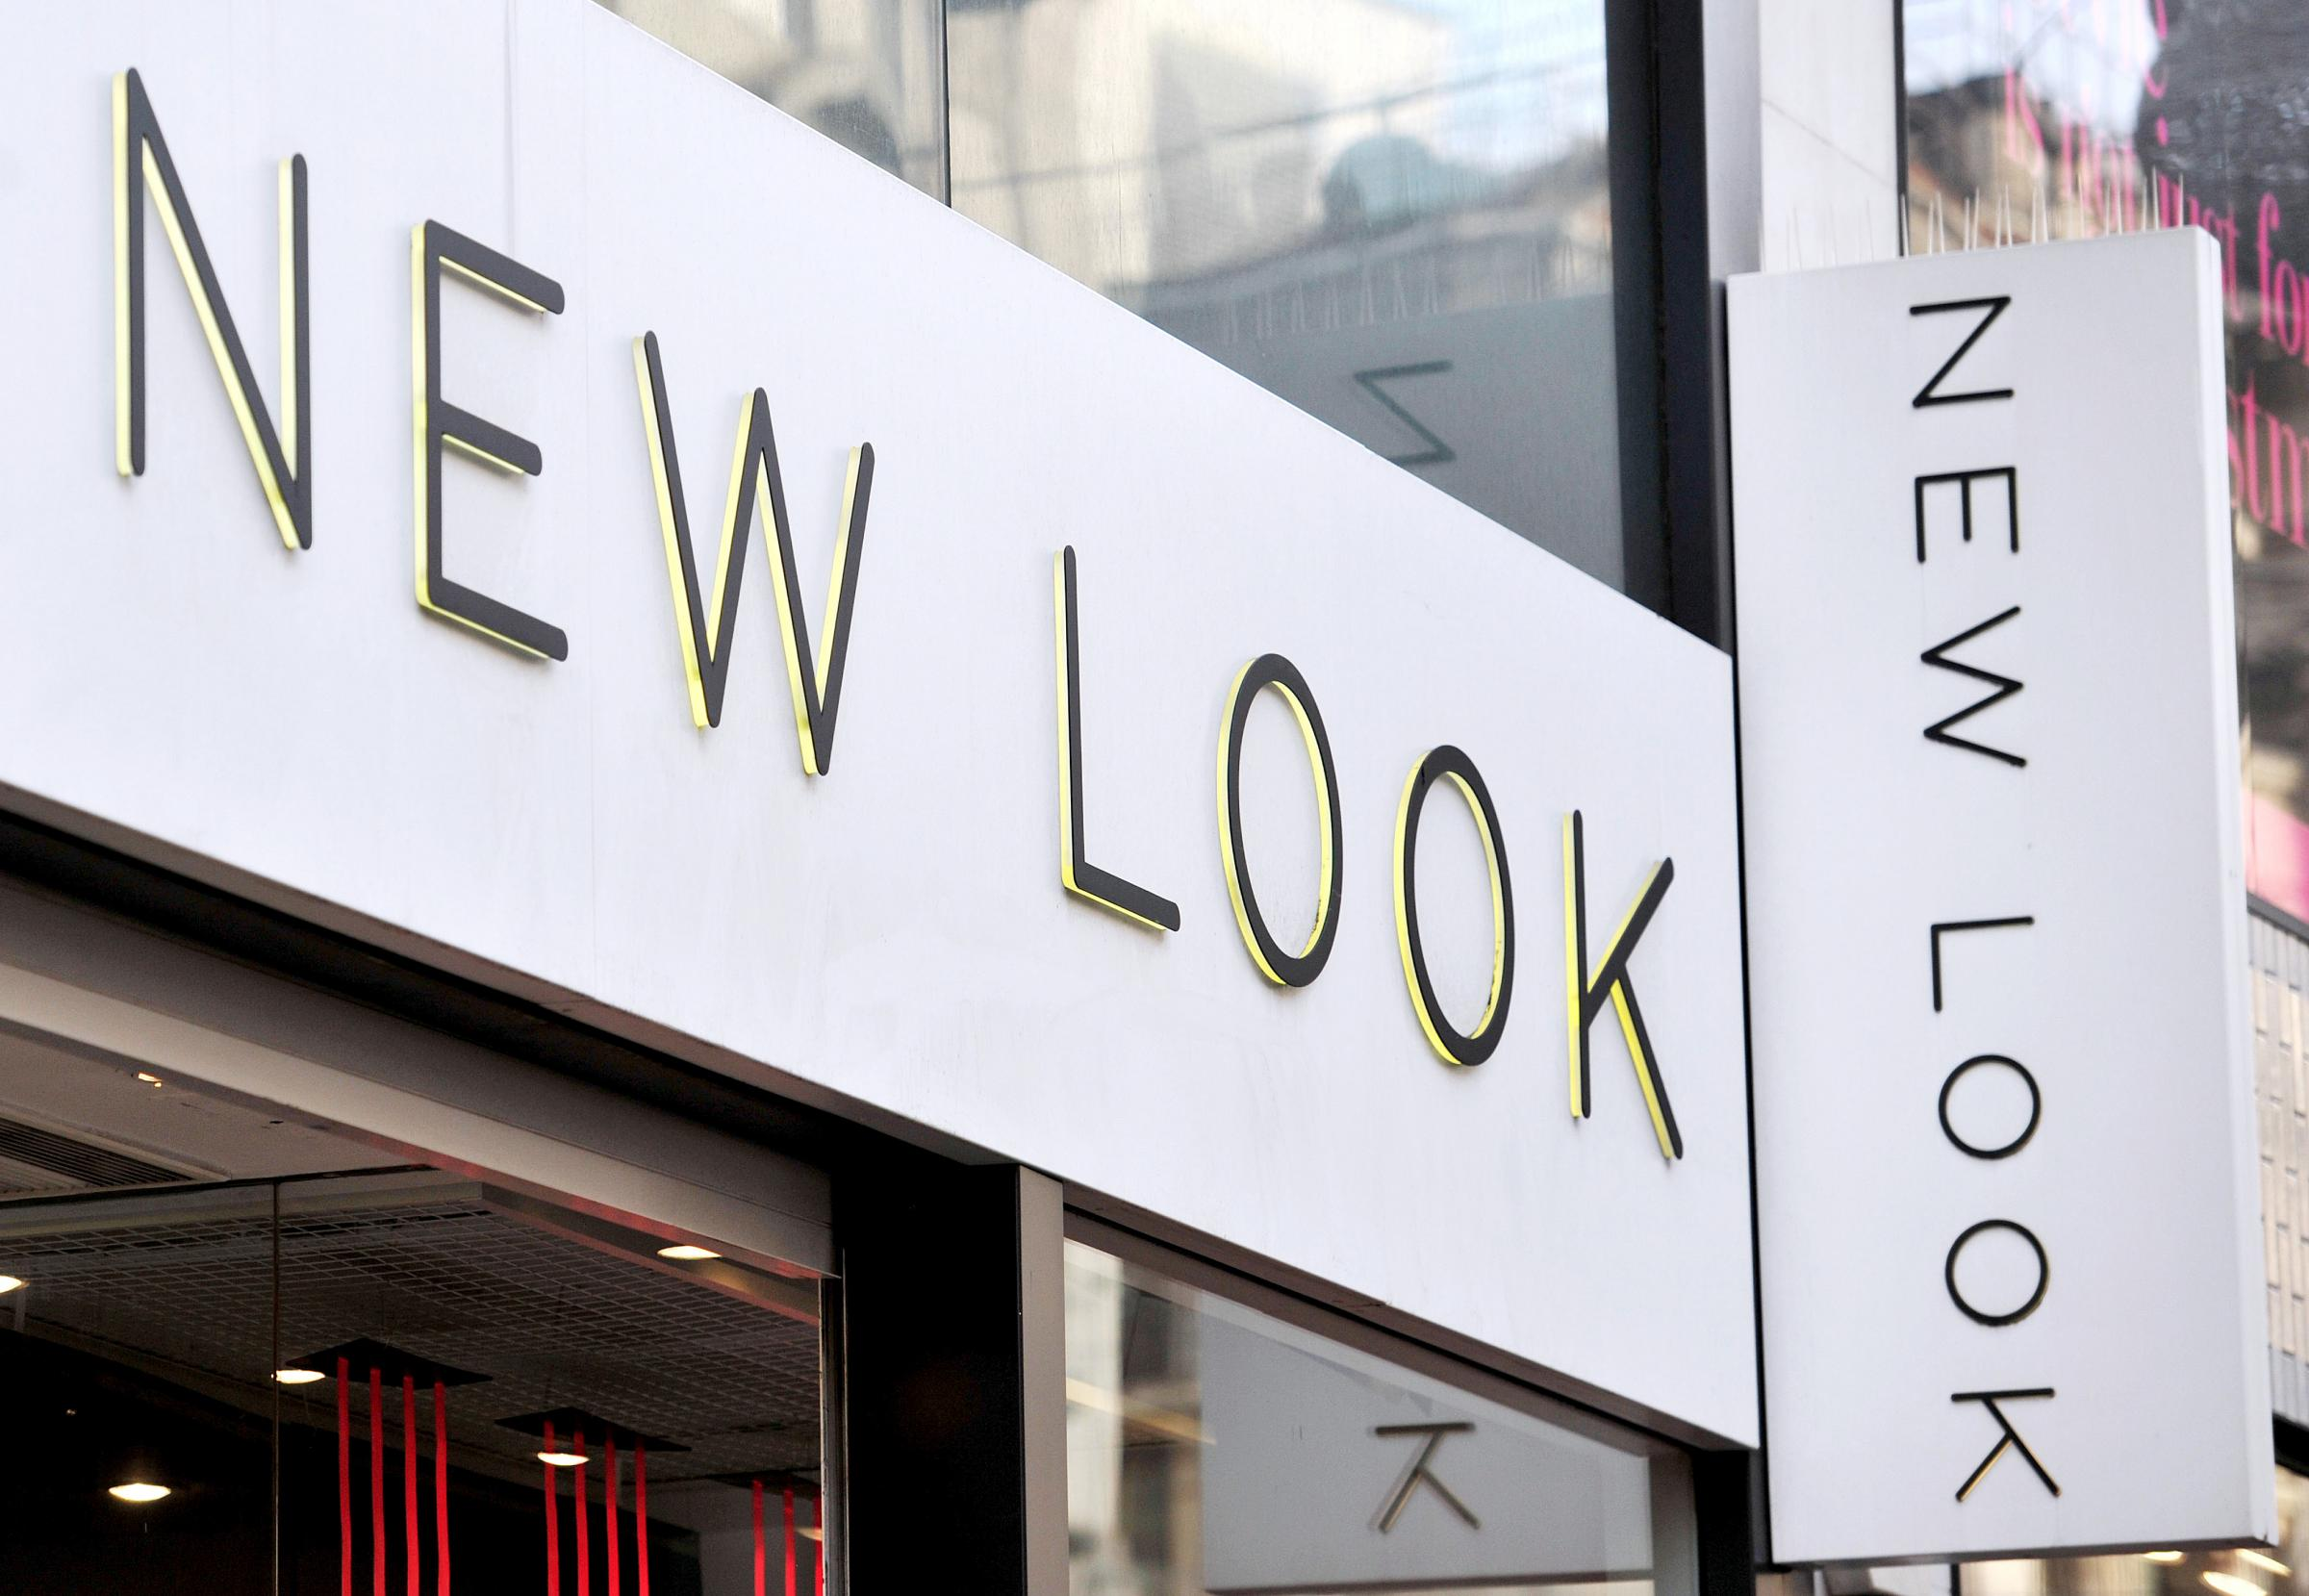 New Look has said that up to 980 jobs are being axed at retailer New Look under plans to shut 60 stores and slash rent on nearly 400 shops as part of a rescue deal.